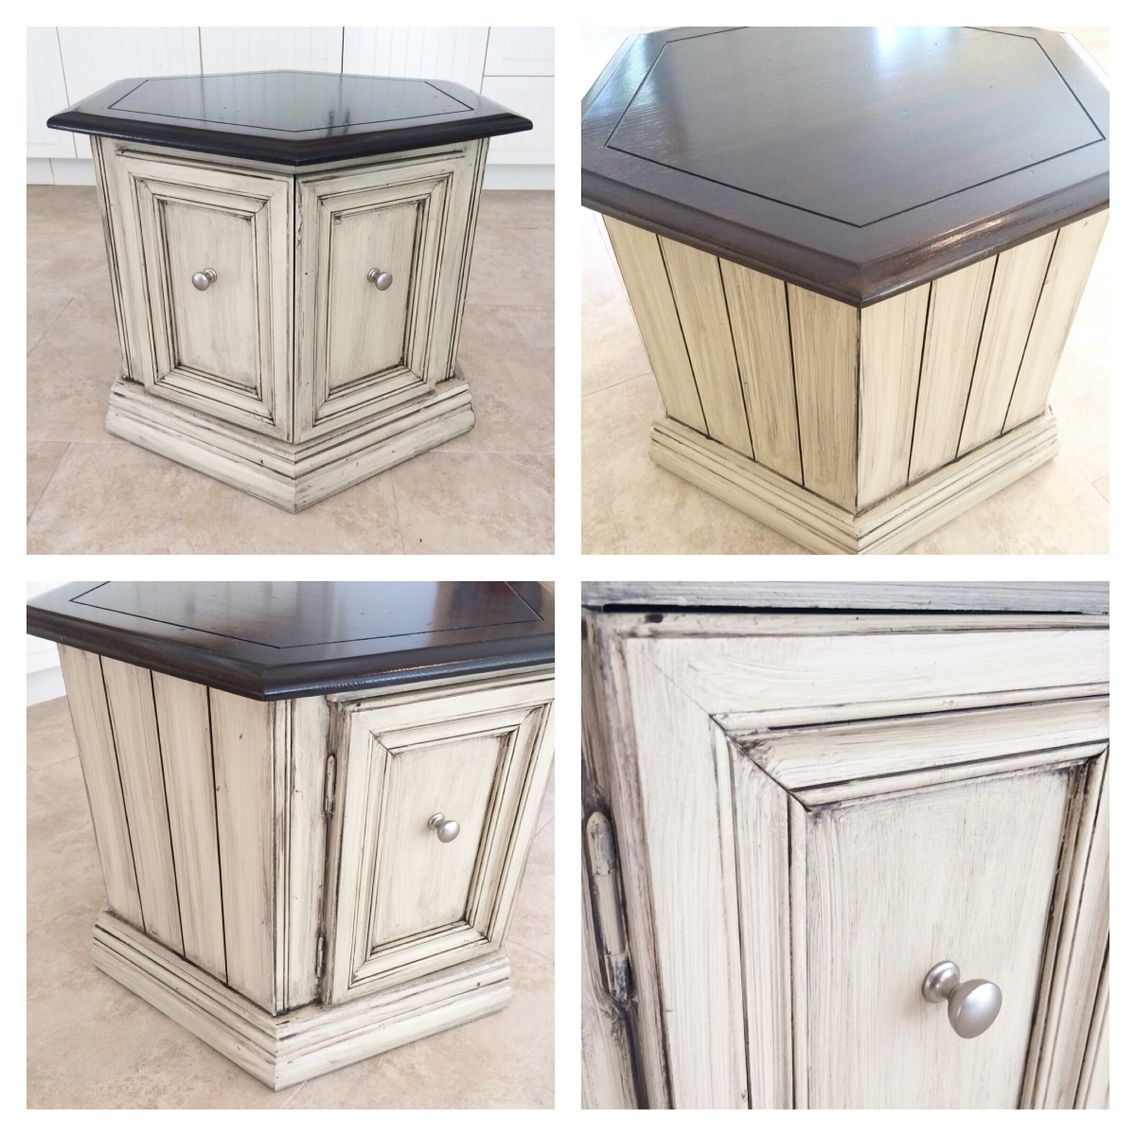 Painting Side Table Ideas Octagon End Table Refinished In Rethunk Junk Paint French